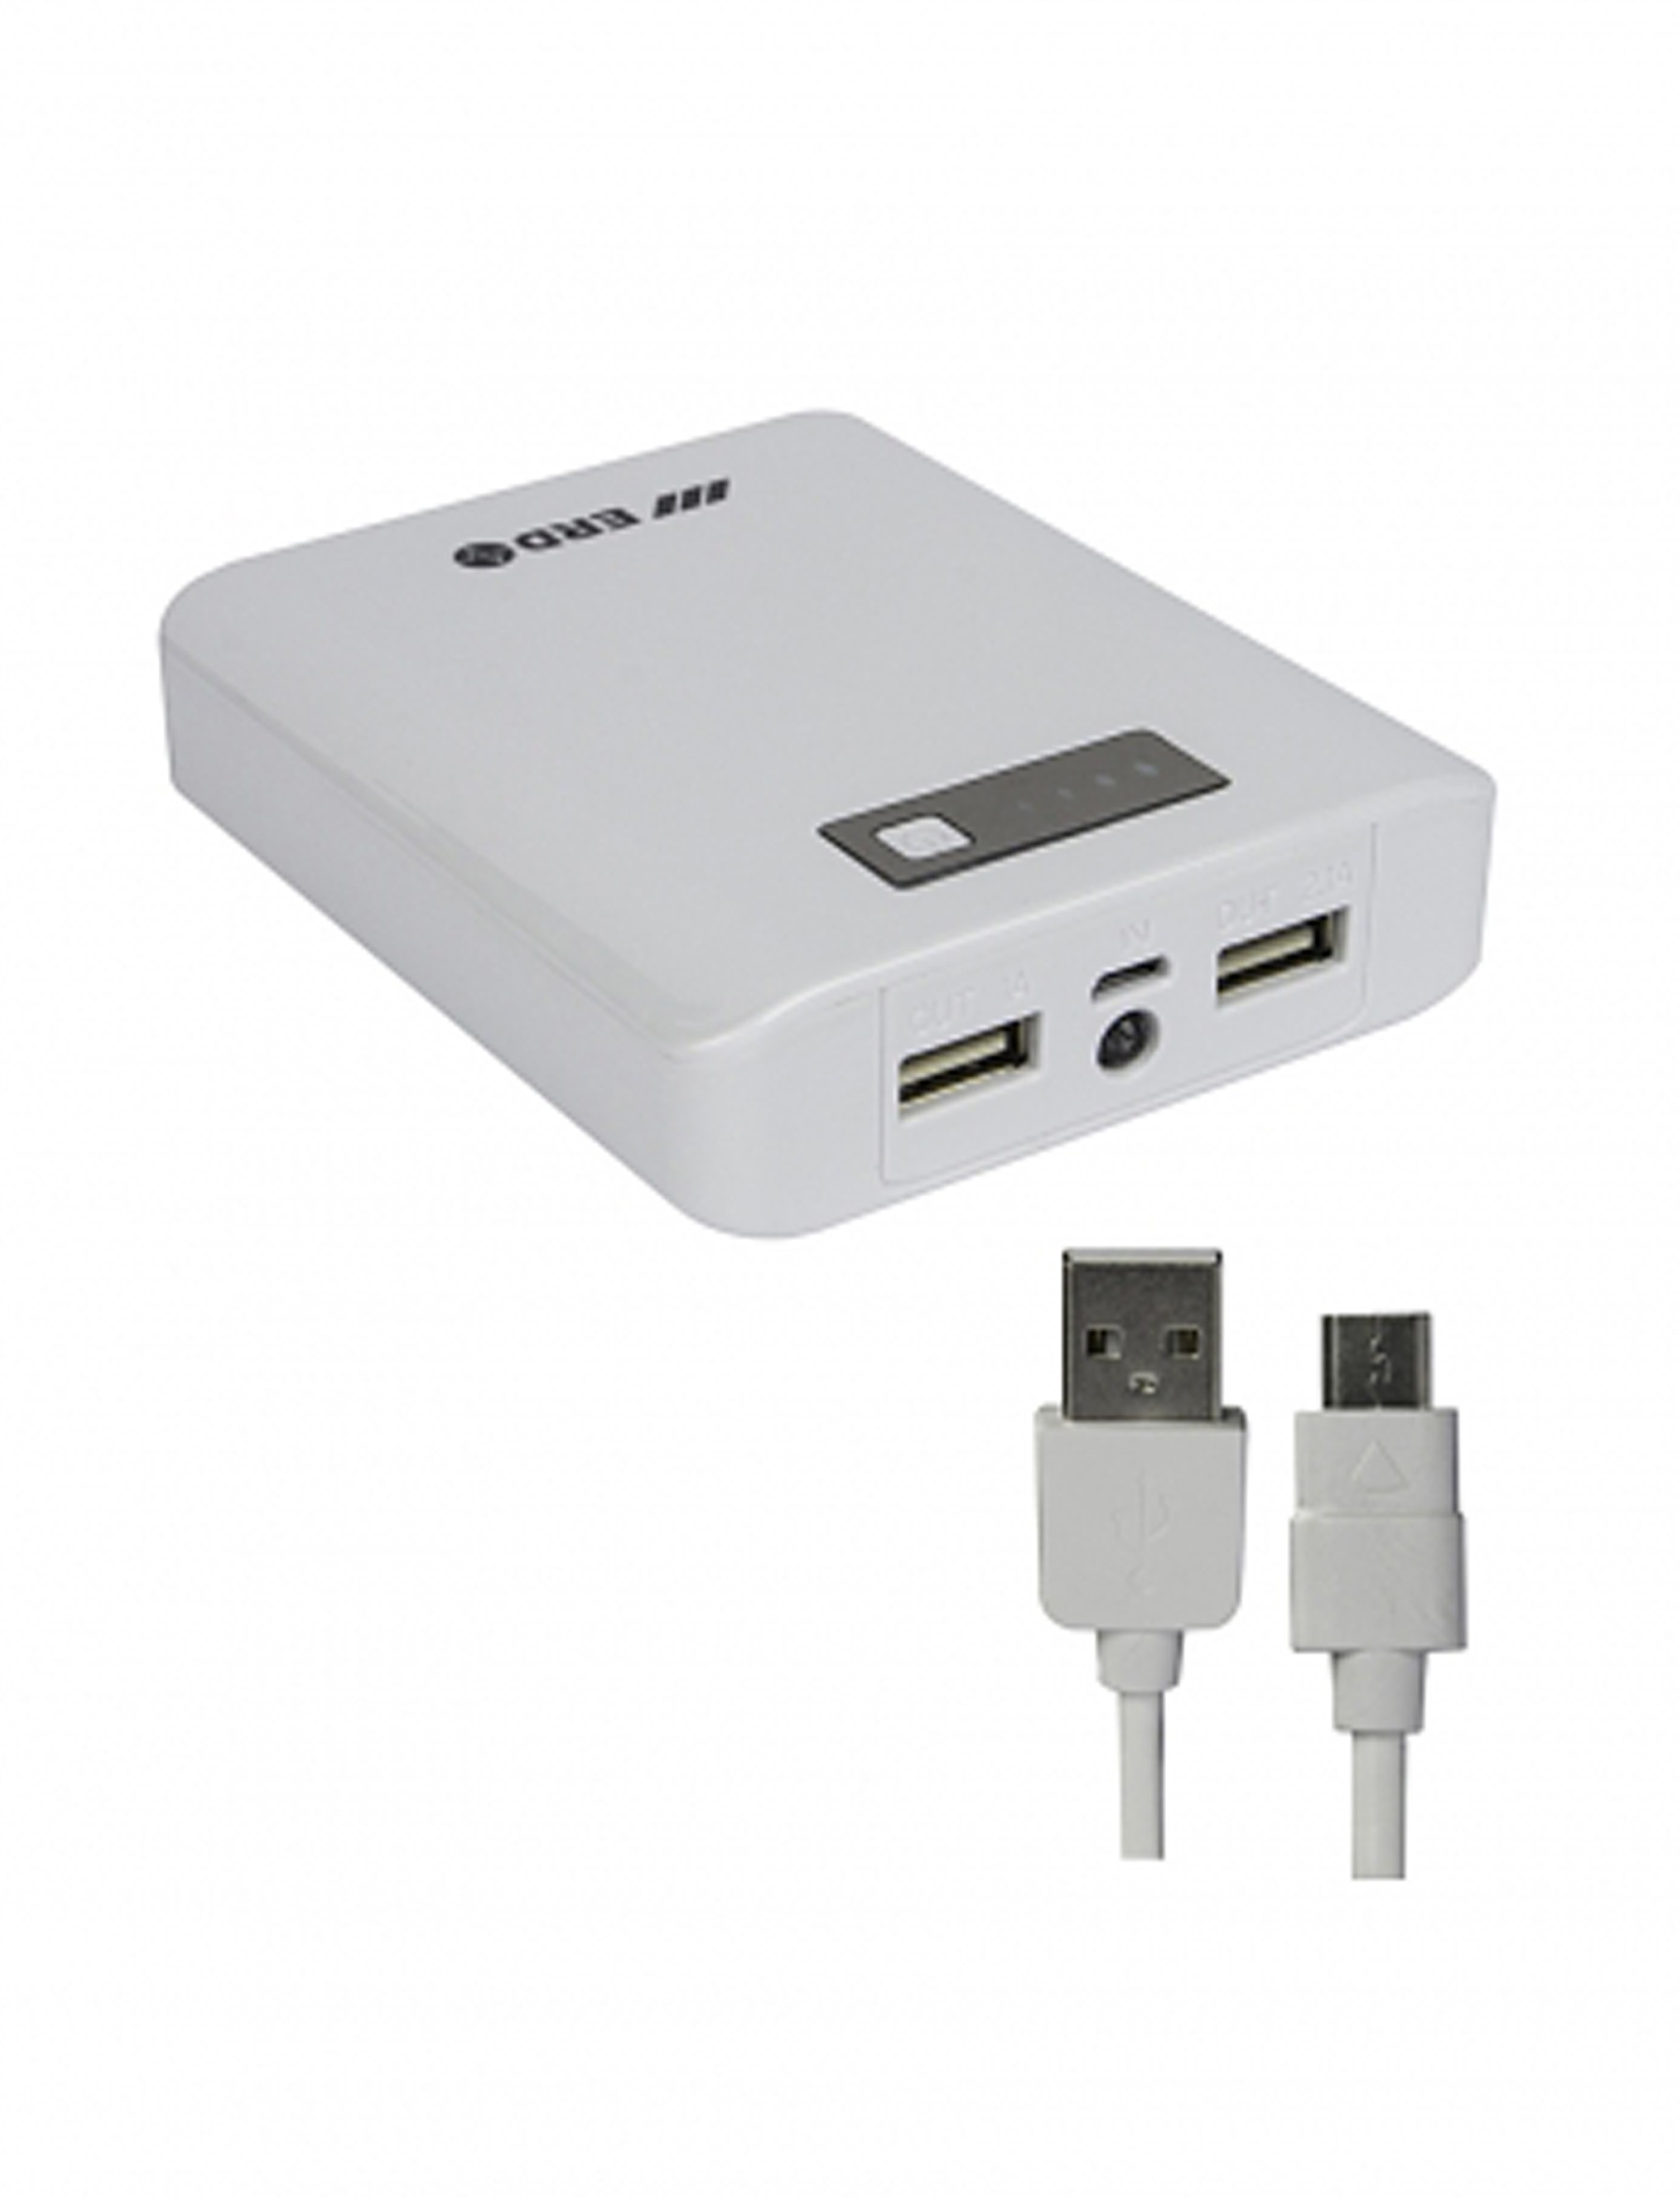 ERD PB-207C Portable Mobile Charger 10400 mAh Power Bank(White, Lithium-ion)